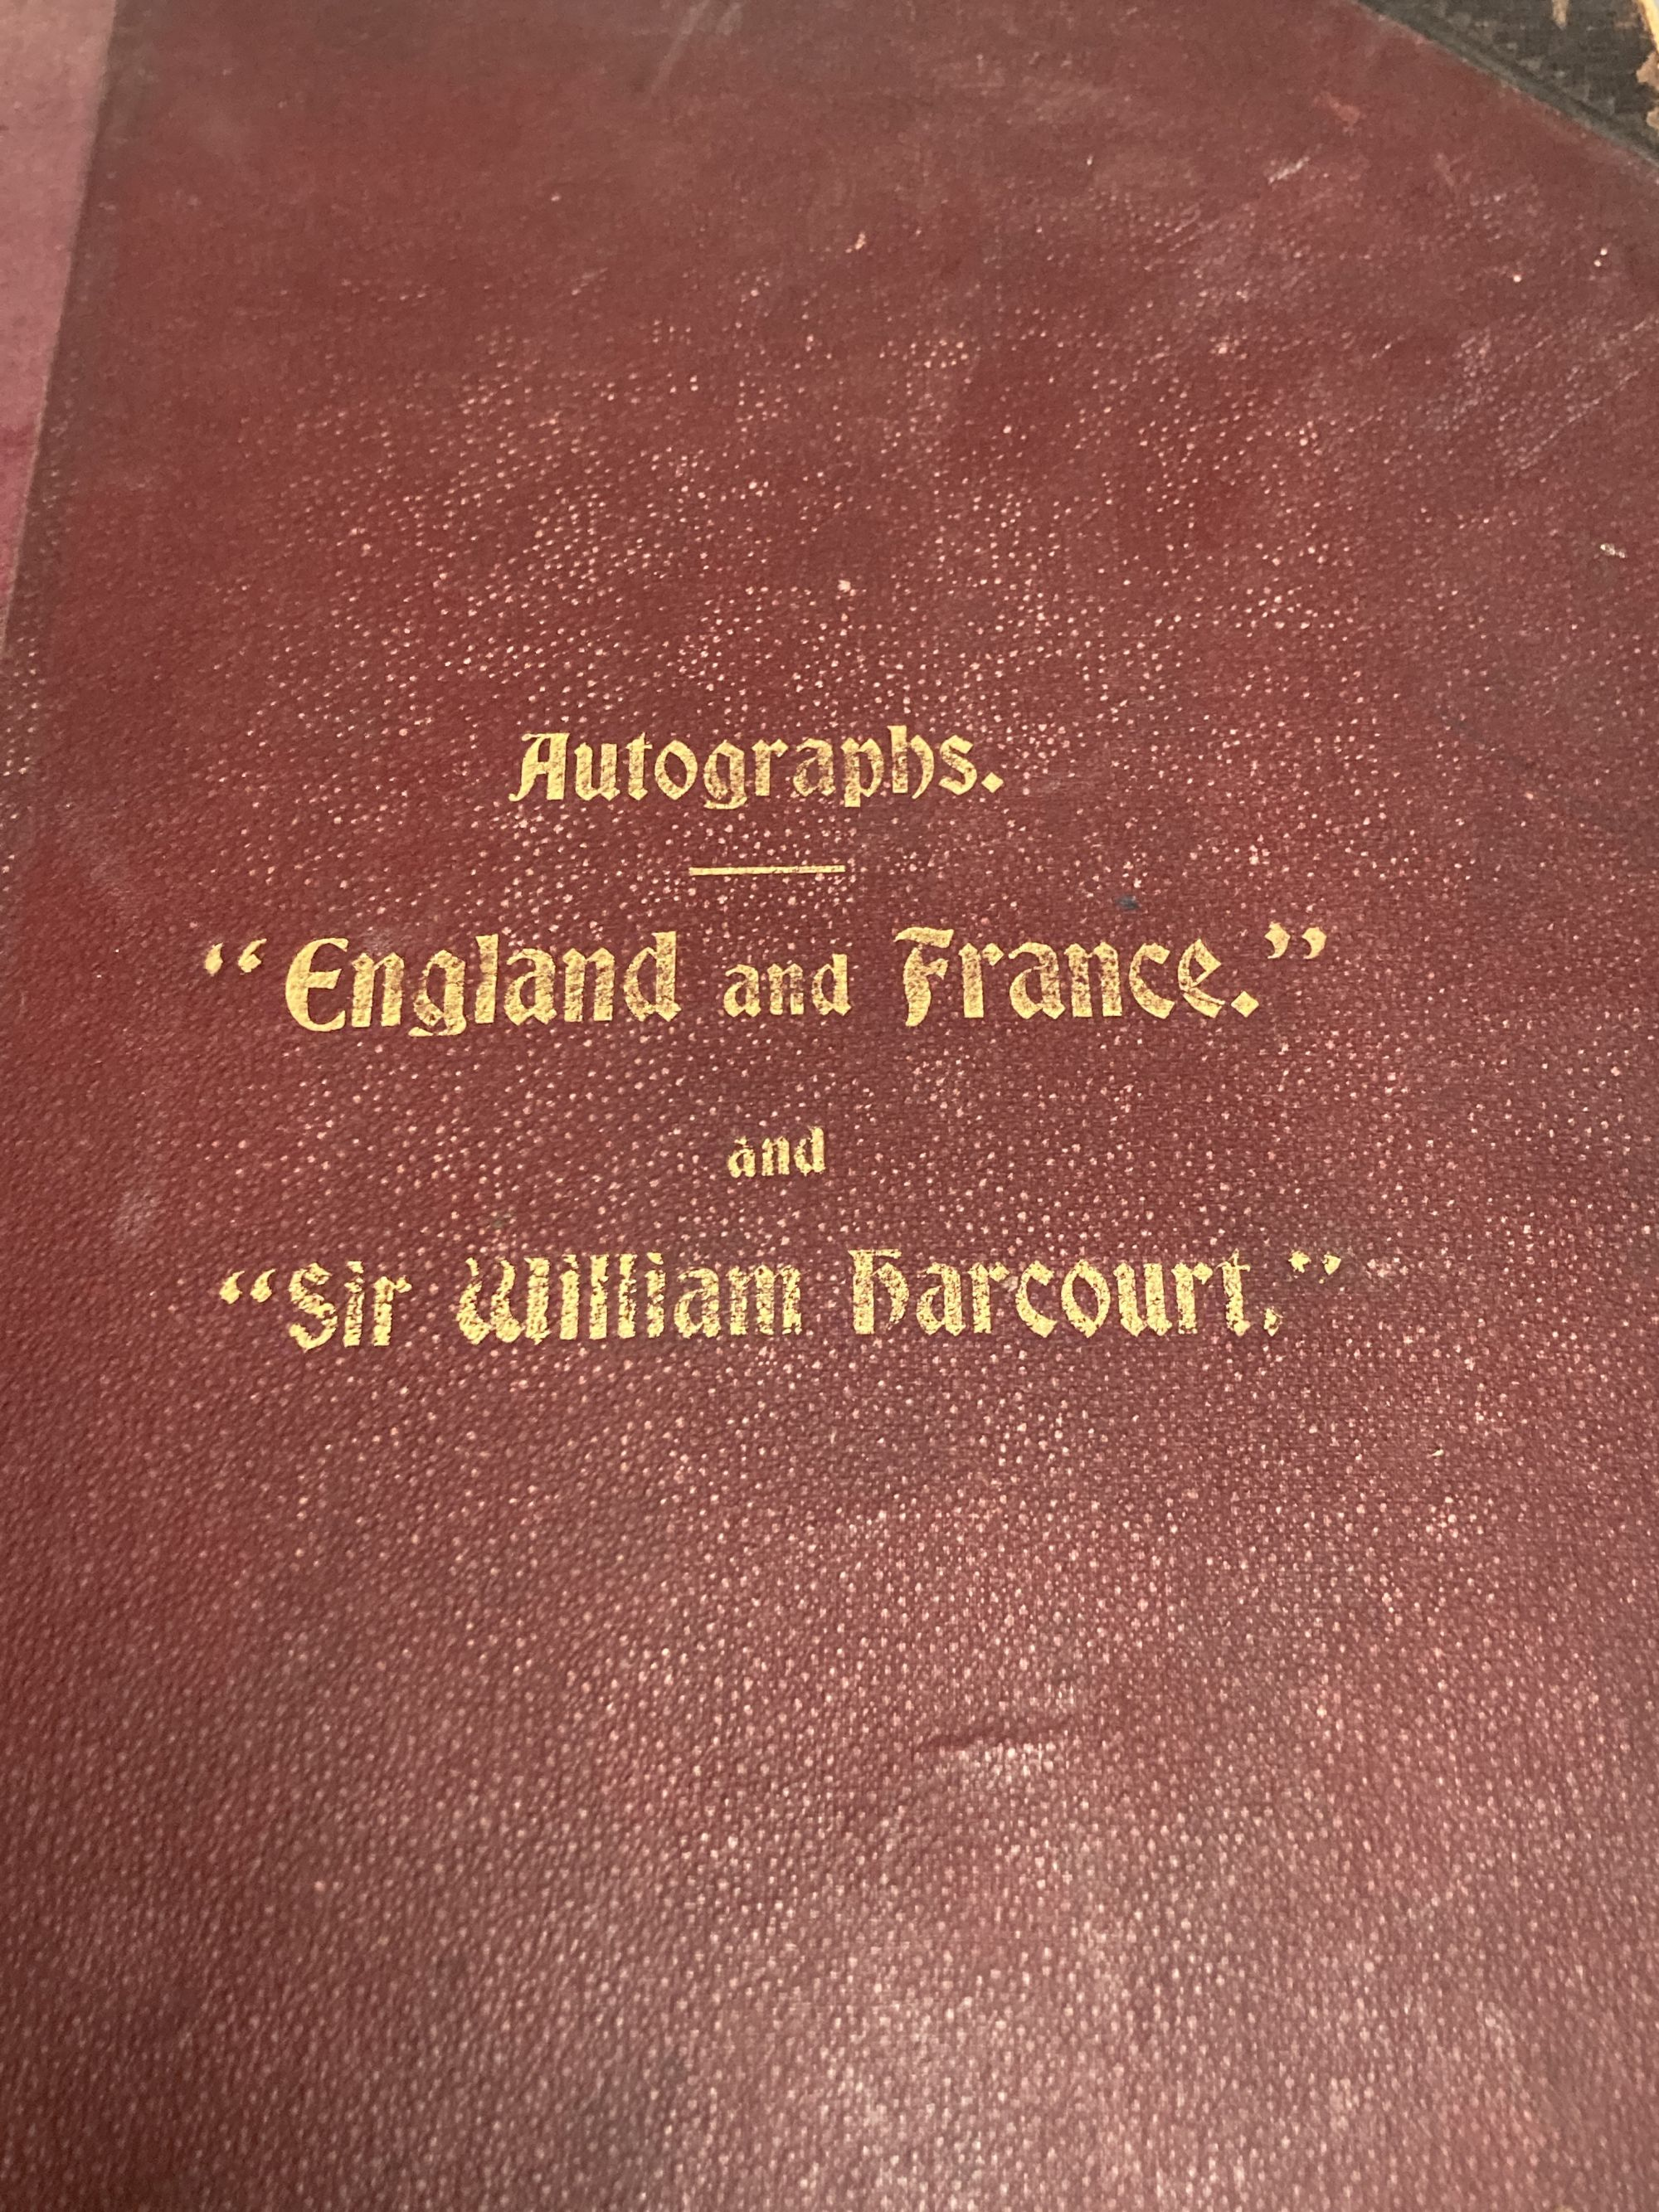 An autograph album of notable Edwardian and 1920s people - Image 2 of 4